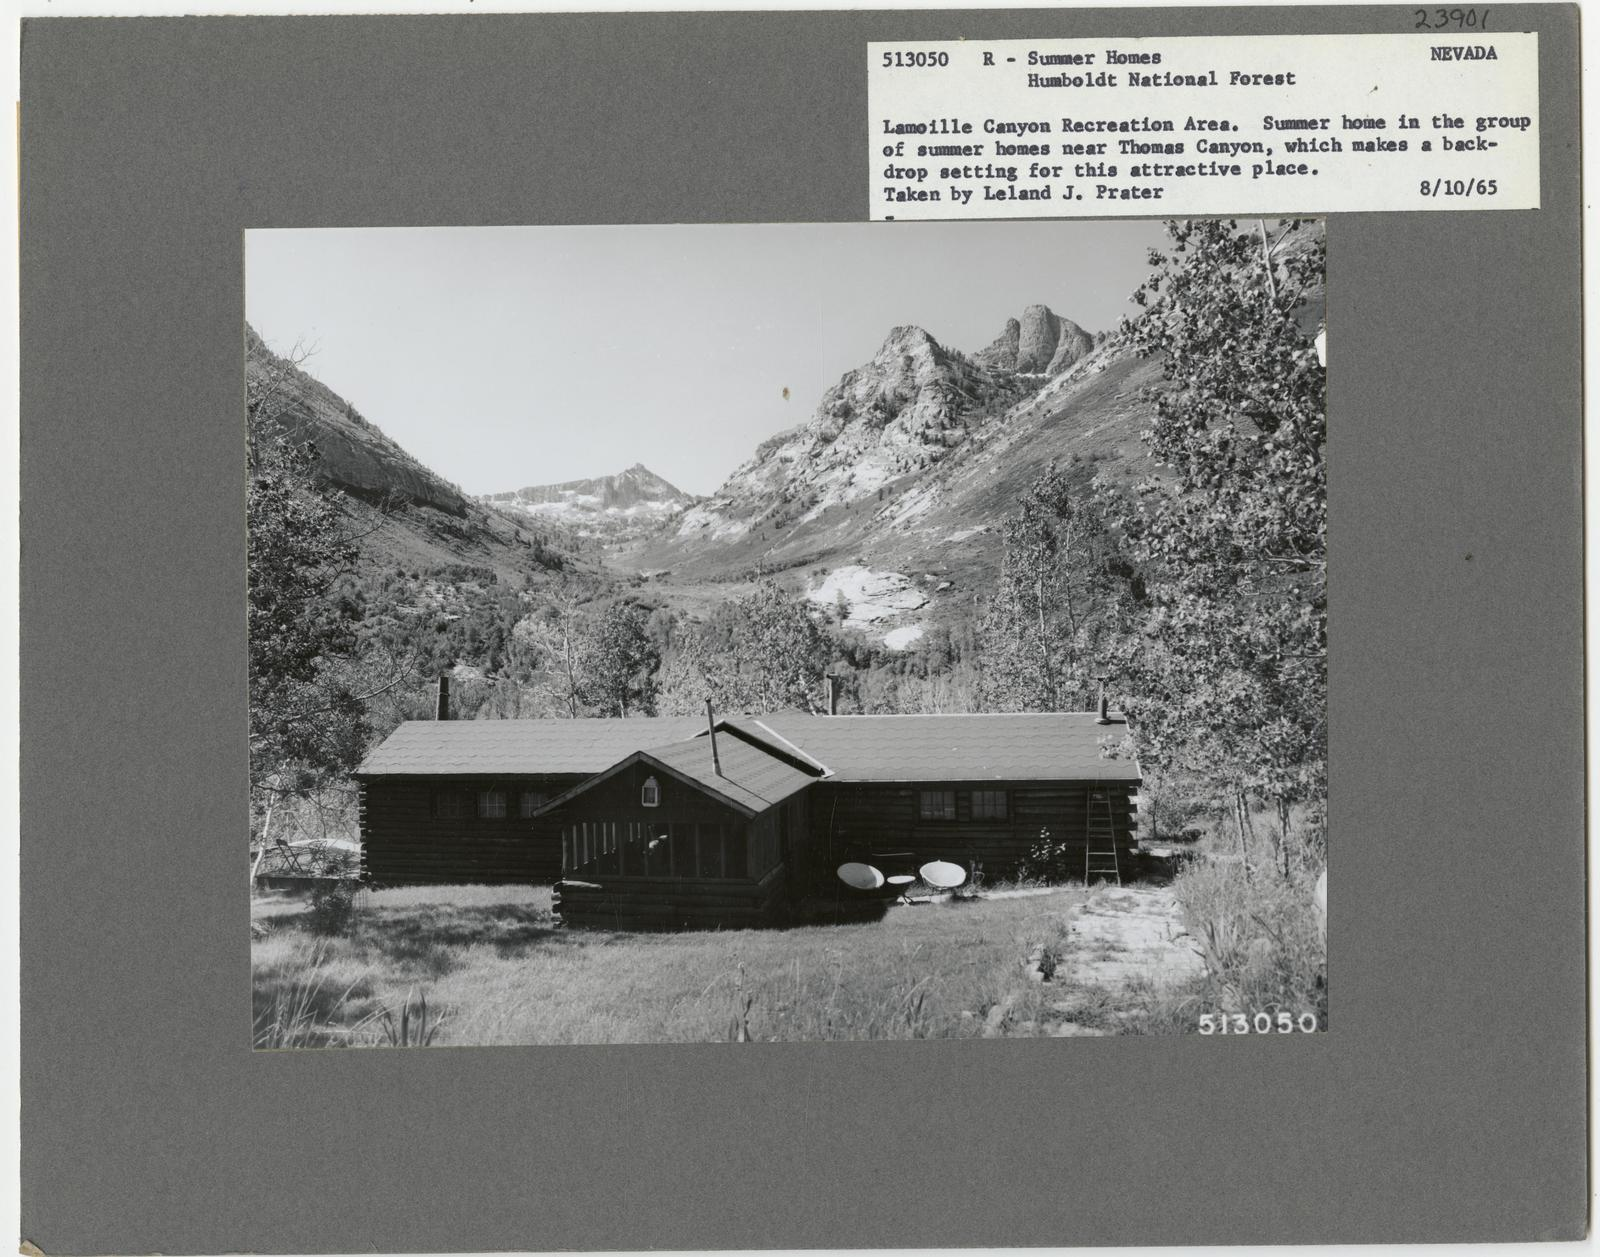 Resorts and Other Dwellings - Nevada